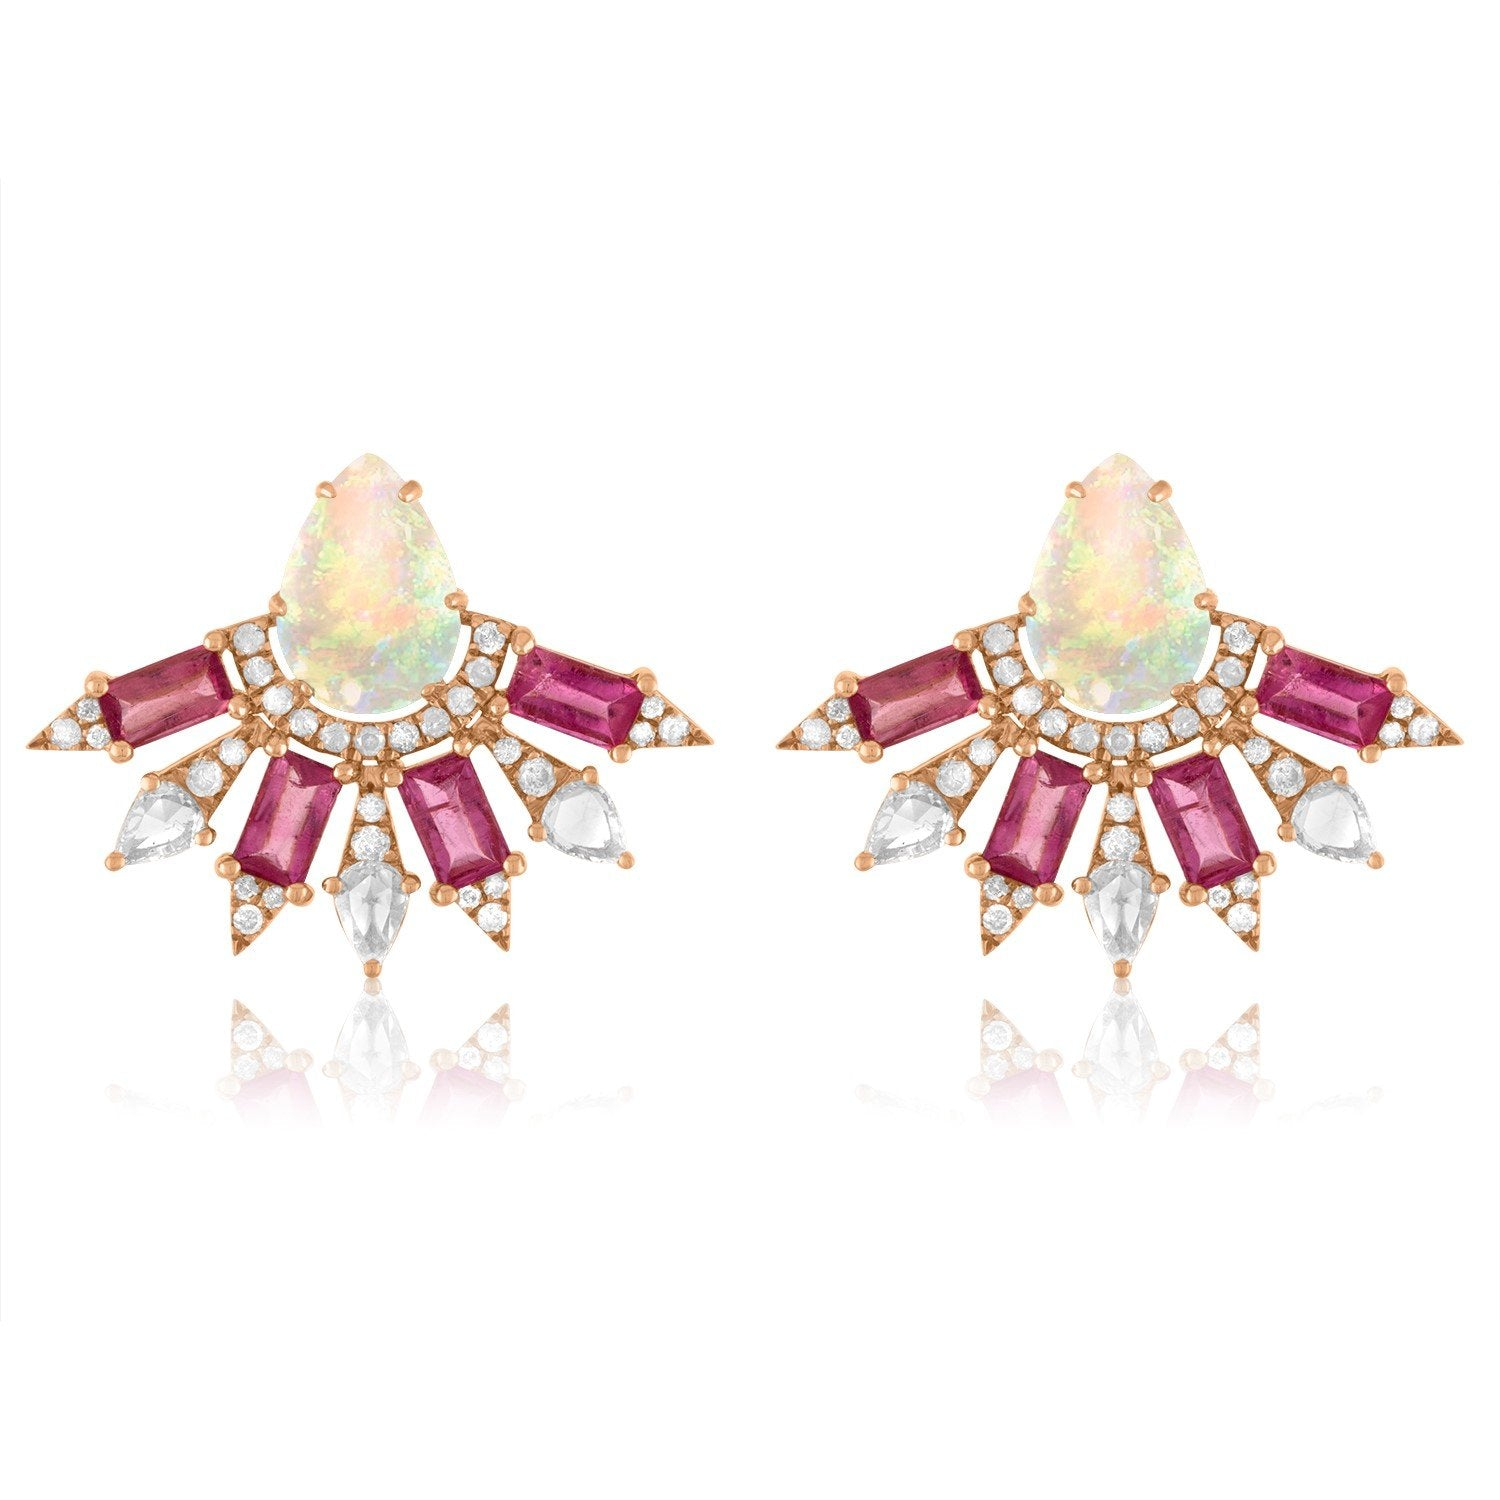 Vincents Fine Jewelry | Jane Kaye | Small Fan Opal Earrings